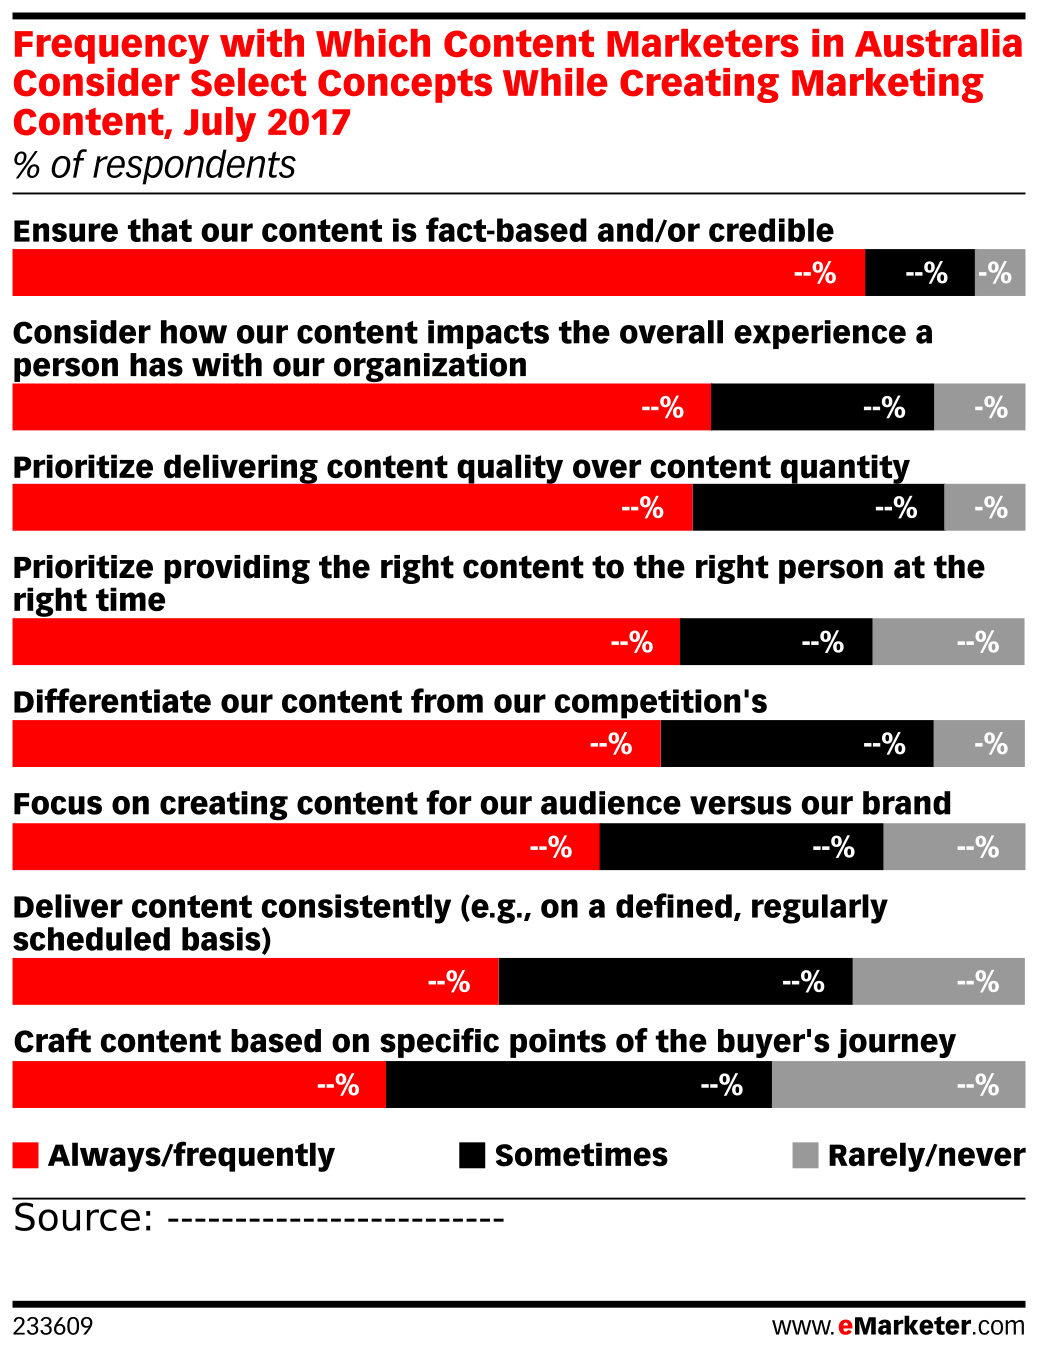 Frequency with Which Content Marketers in Australia Consider Select Concepts While Creating Marketing Content, July 2017 (% of respondents)